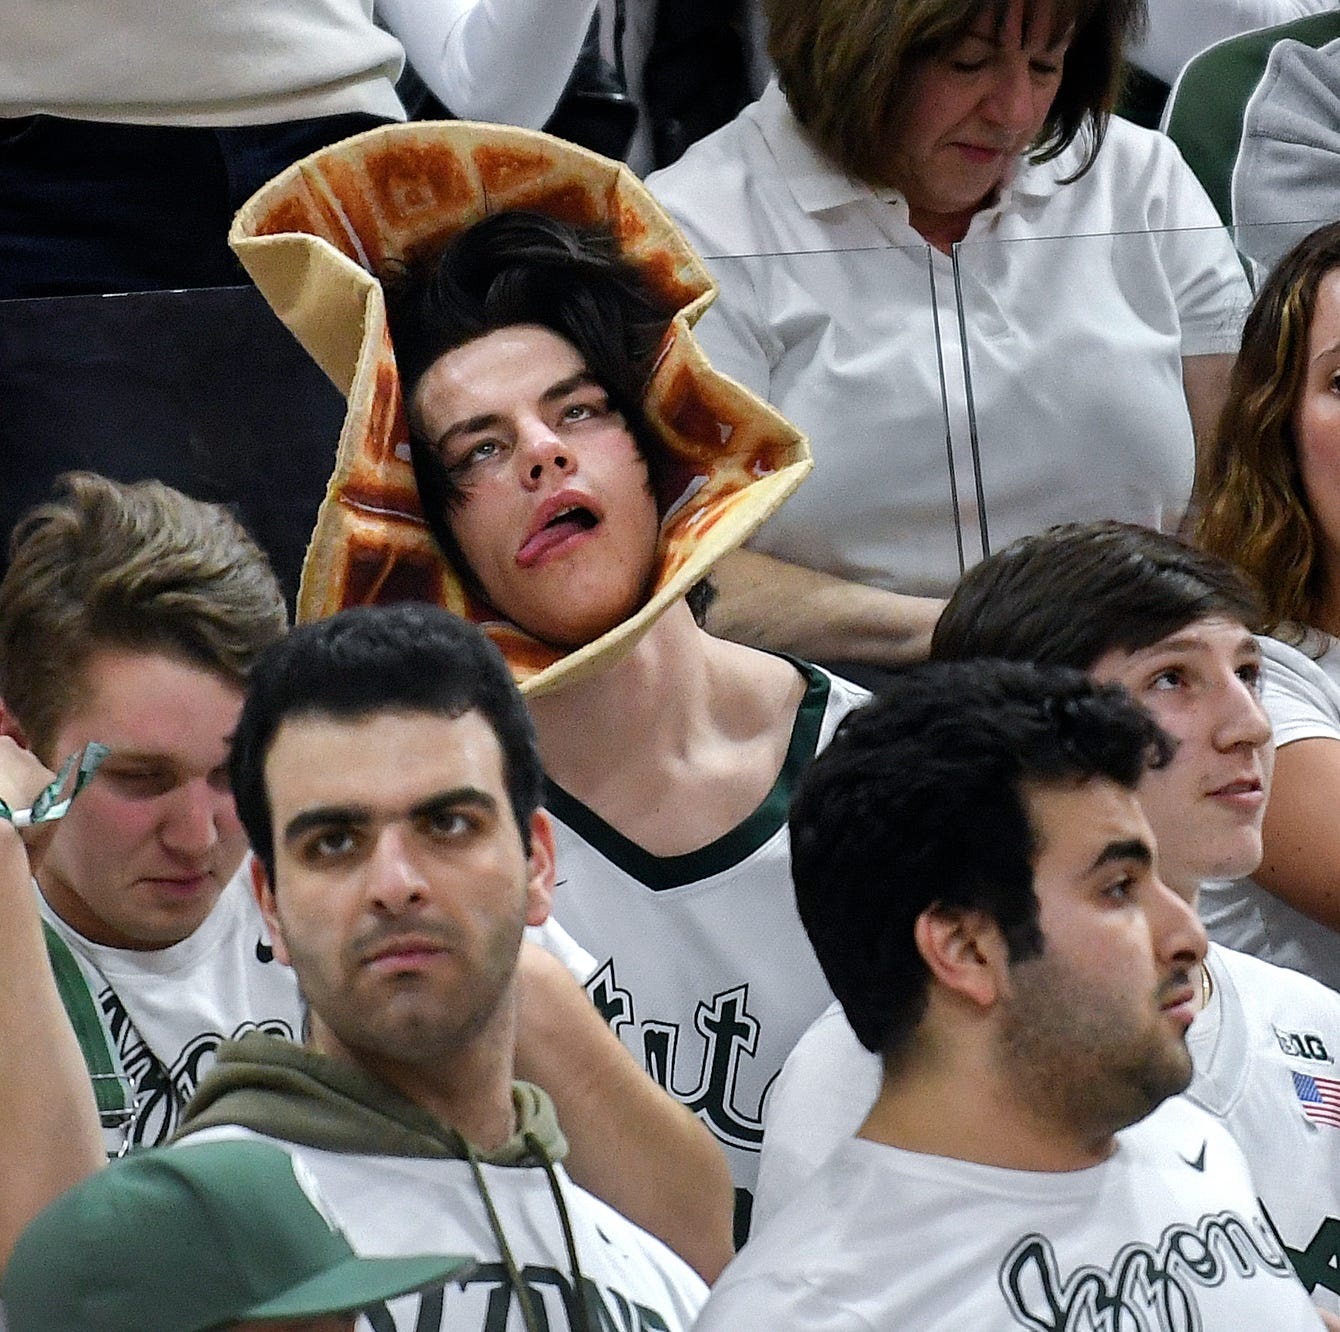 Meet Michigan State's 'Waffle Guy,' who got ESPN airtime for basketball game antics